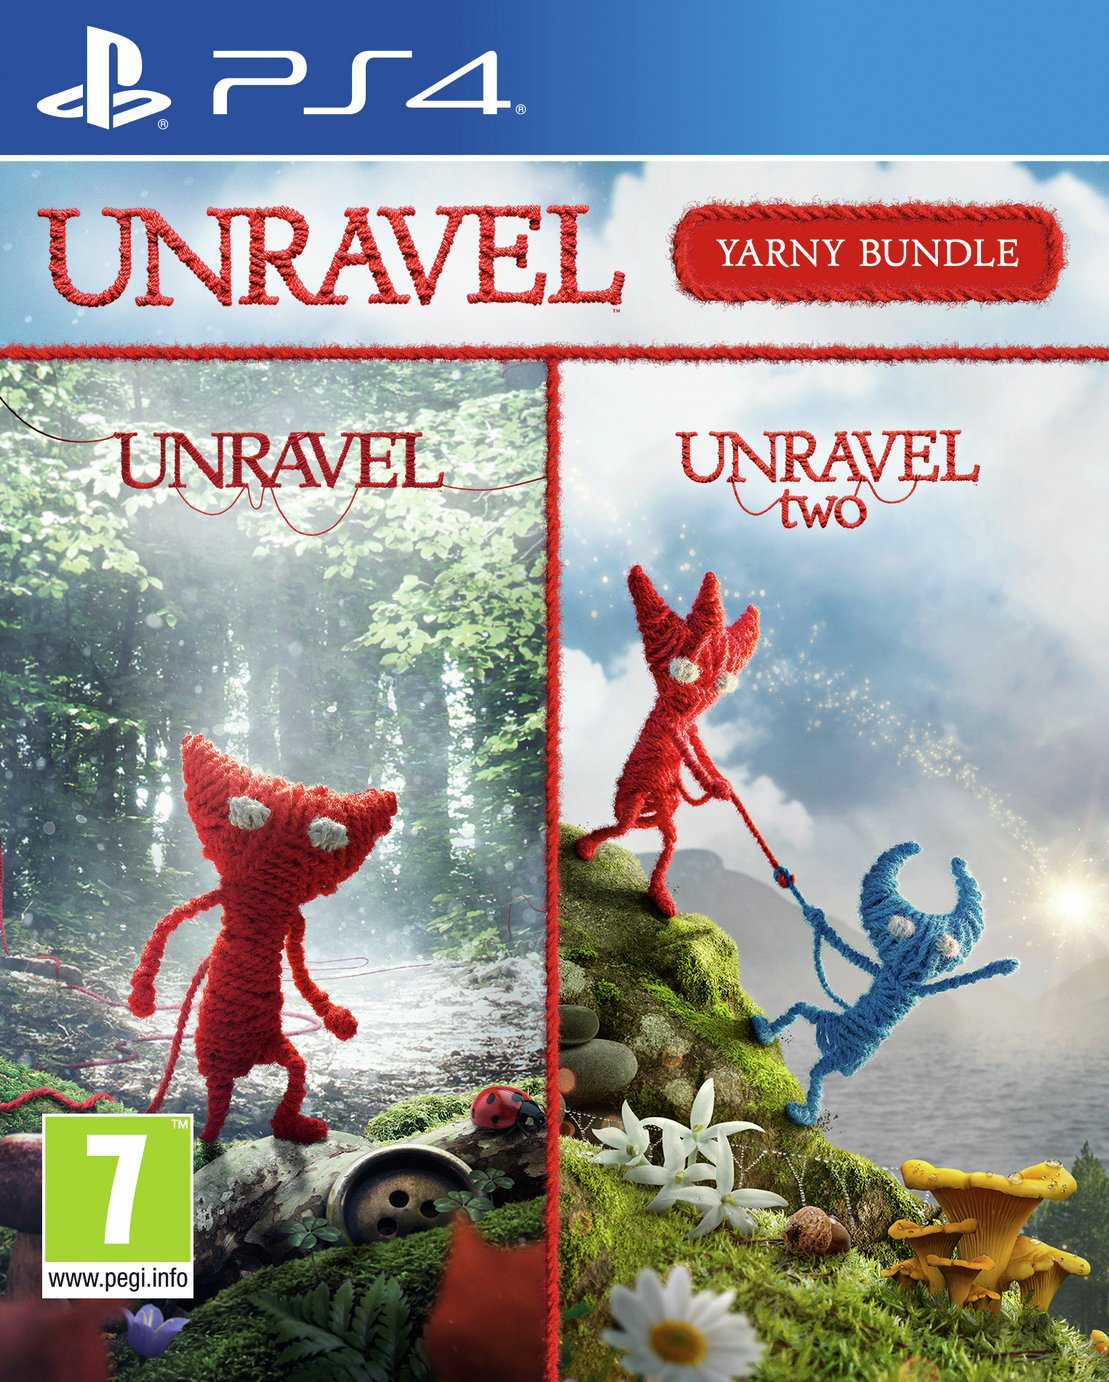 Unravel: Yarny Bundle PS4 Game